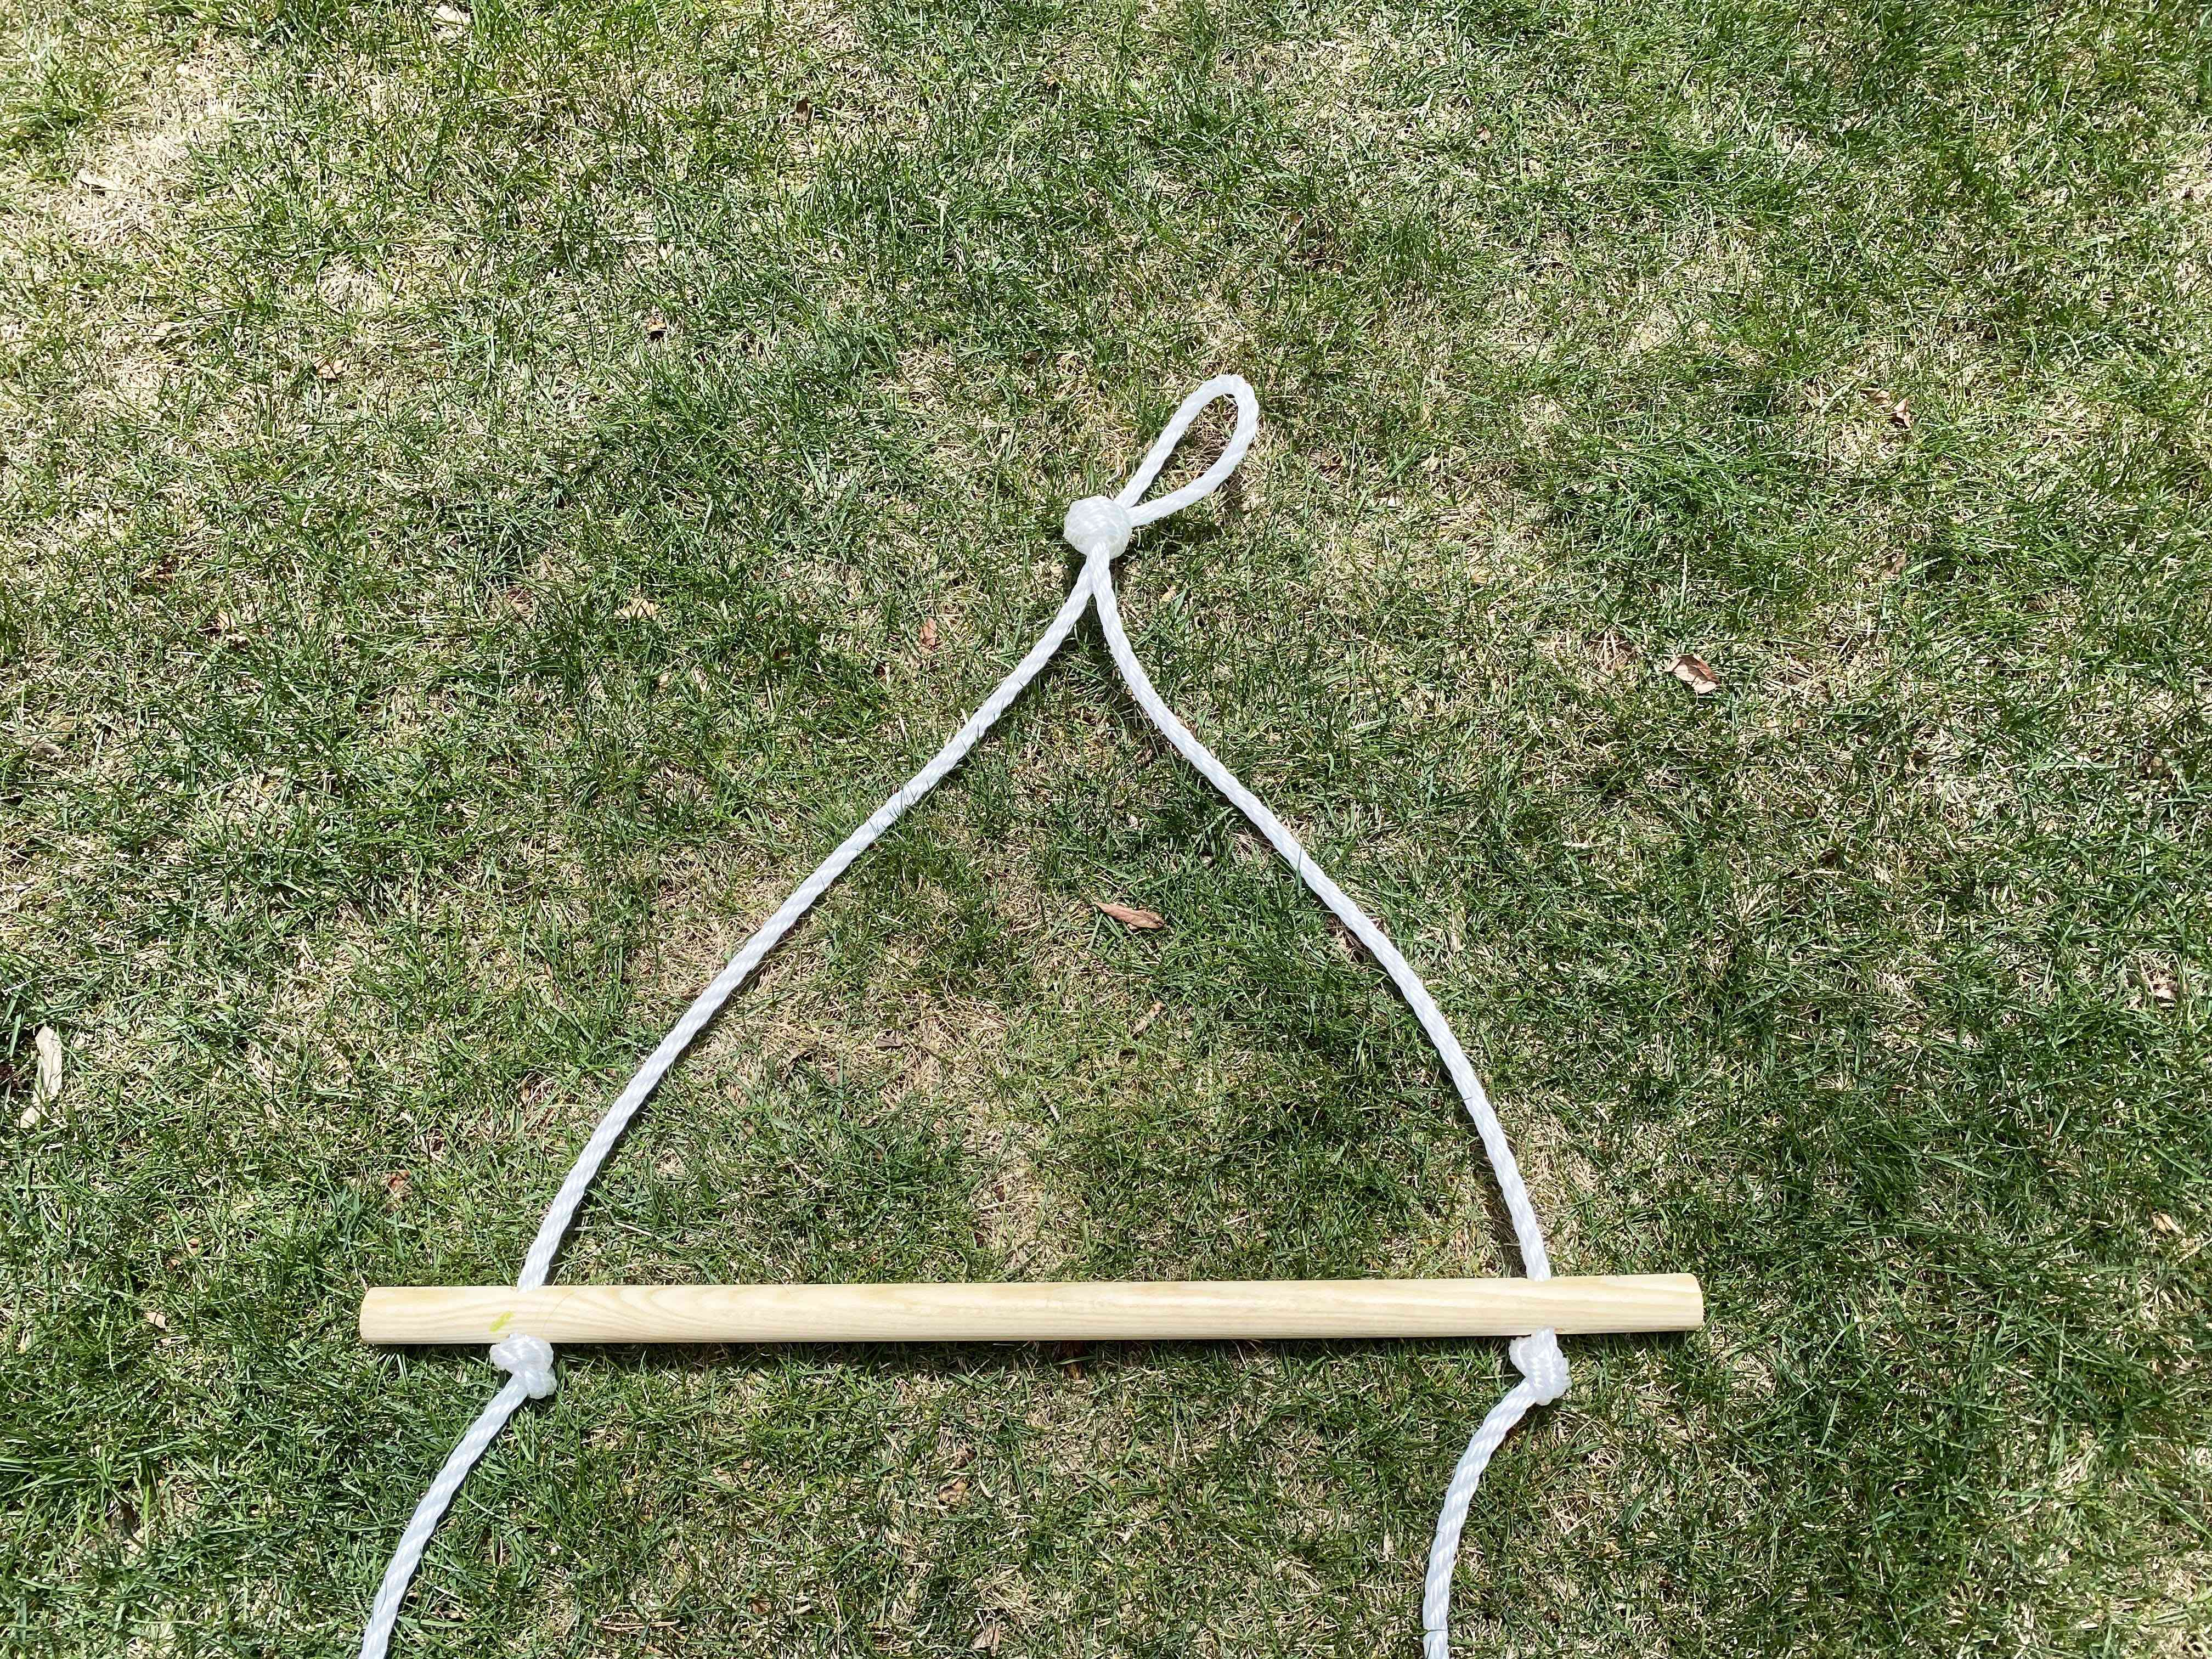 A rope attached to a dowel